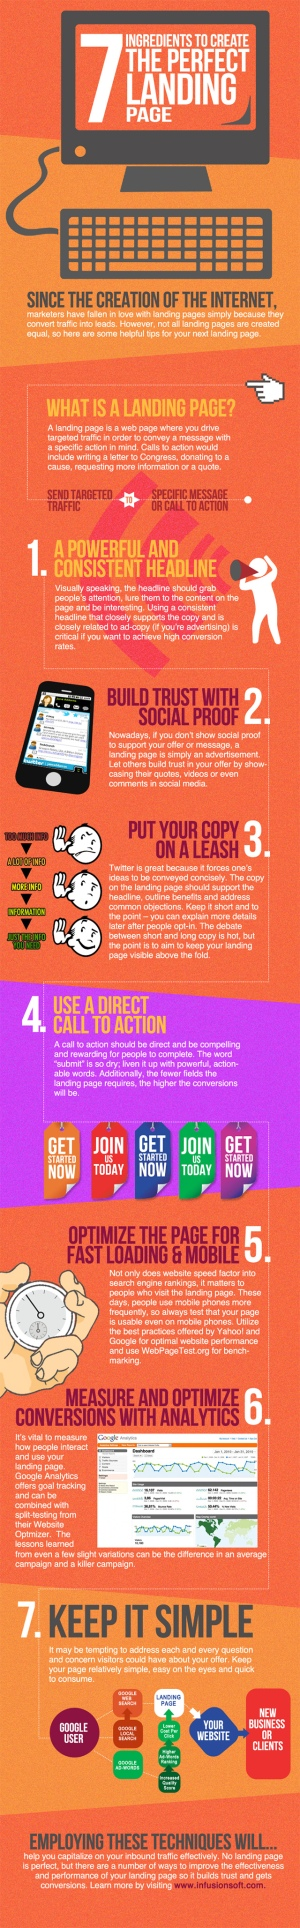 7 ingredients to create the perfect landing page